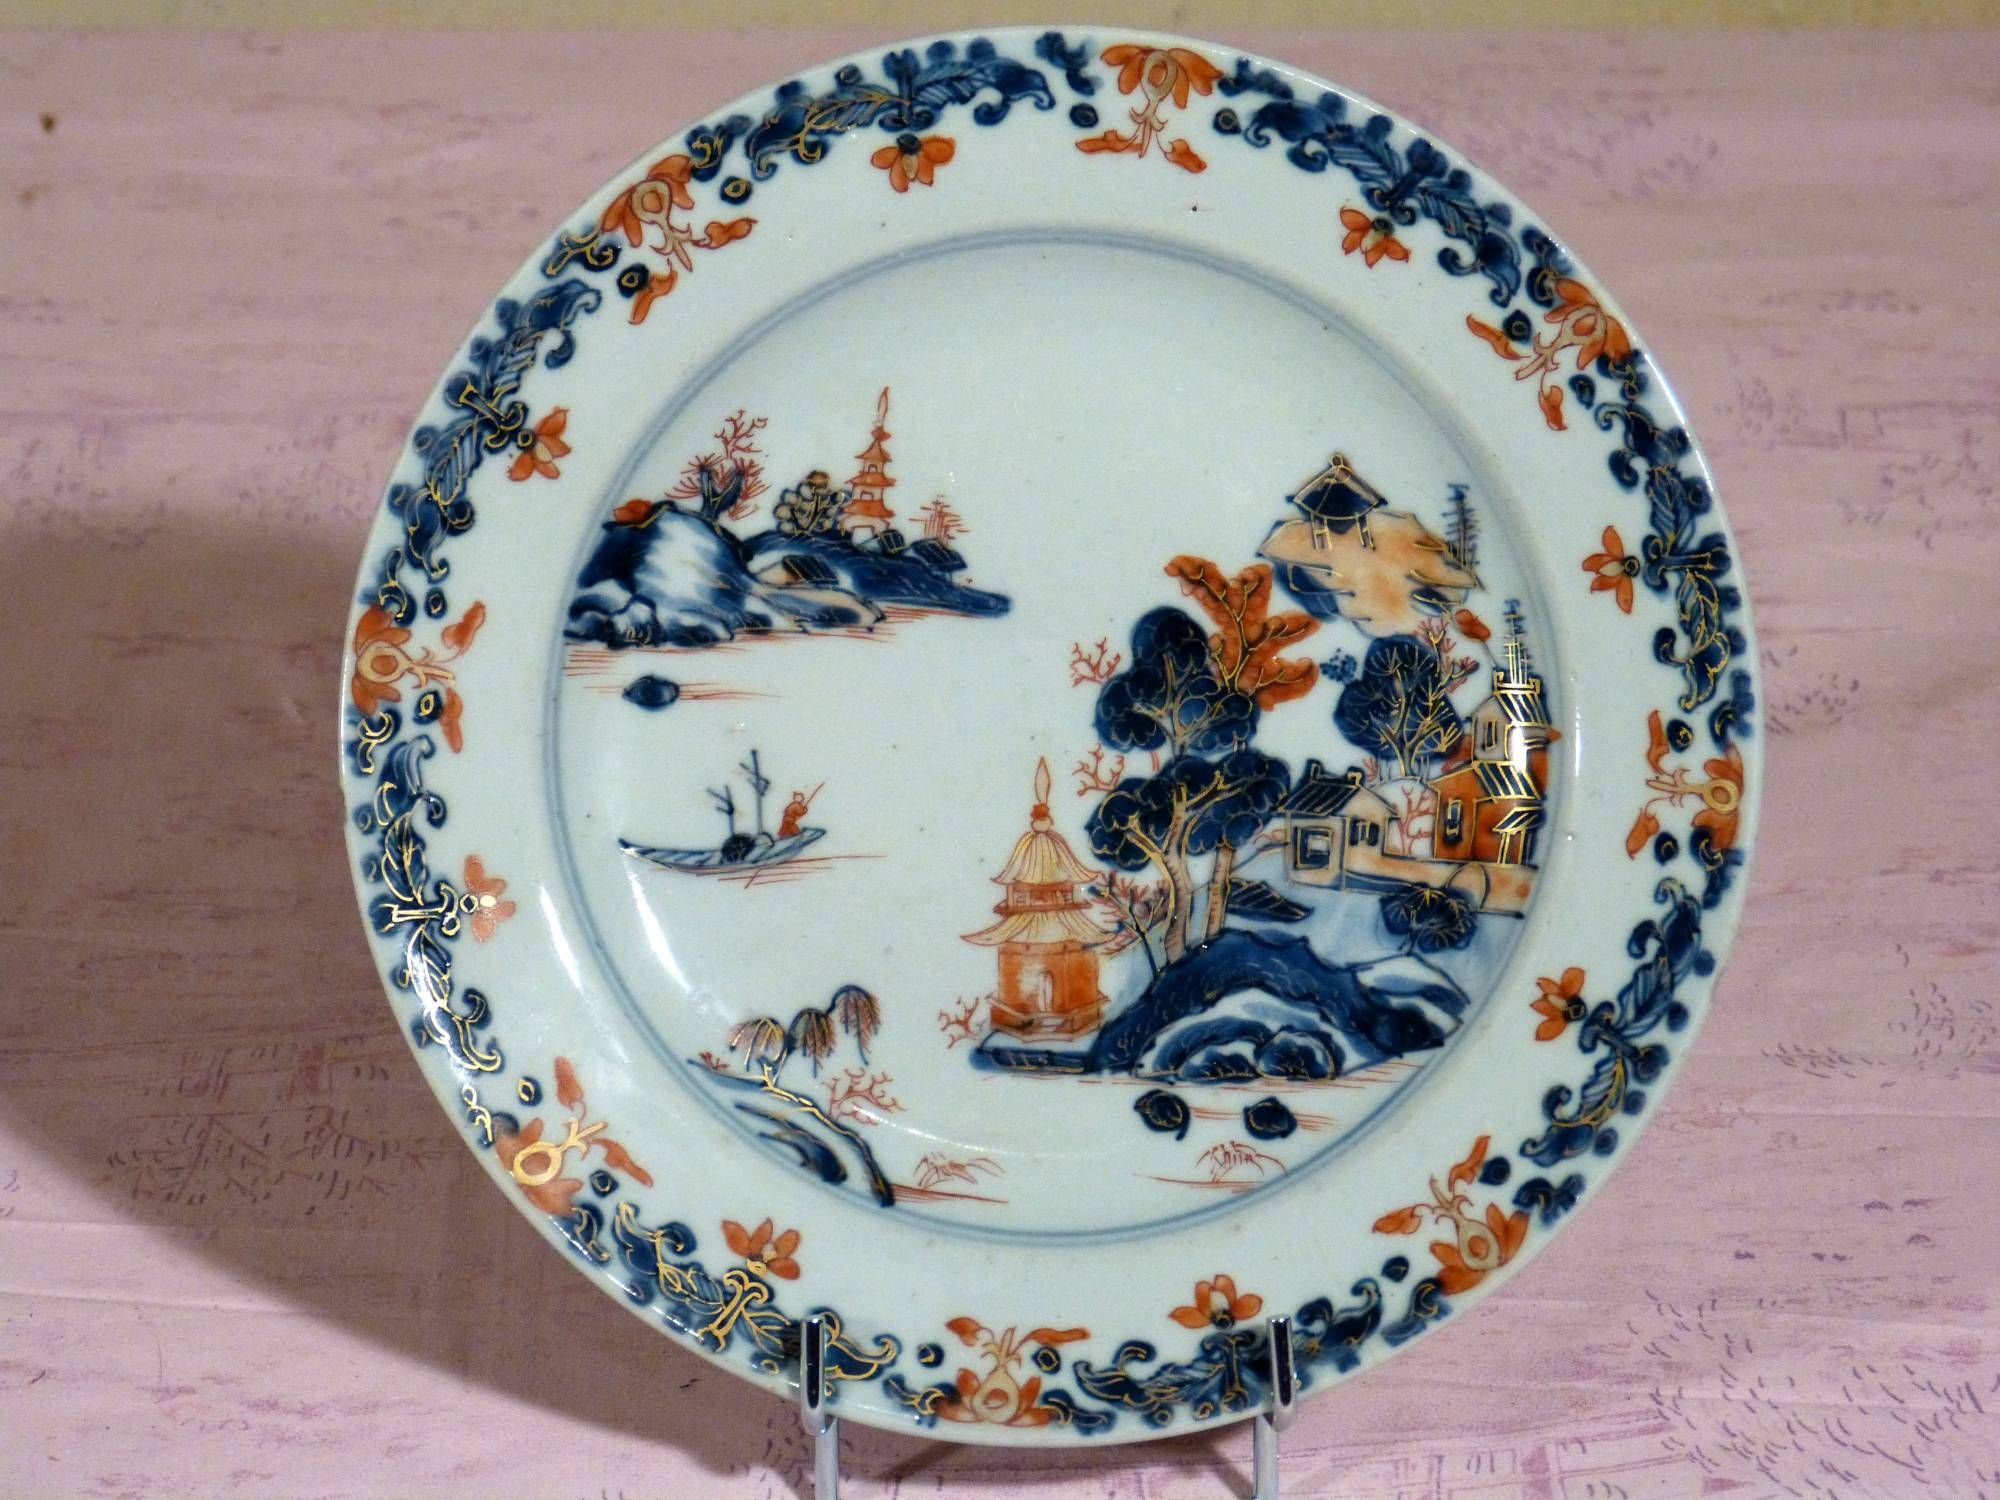 Antique for sale Chinese porcelain Imari plate village pagoda and s&an Vessel Ceramic Faïence Porcelain Decorative art & Antique for sale Chinese porcelain Imari plate village pagoda and ...